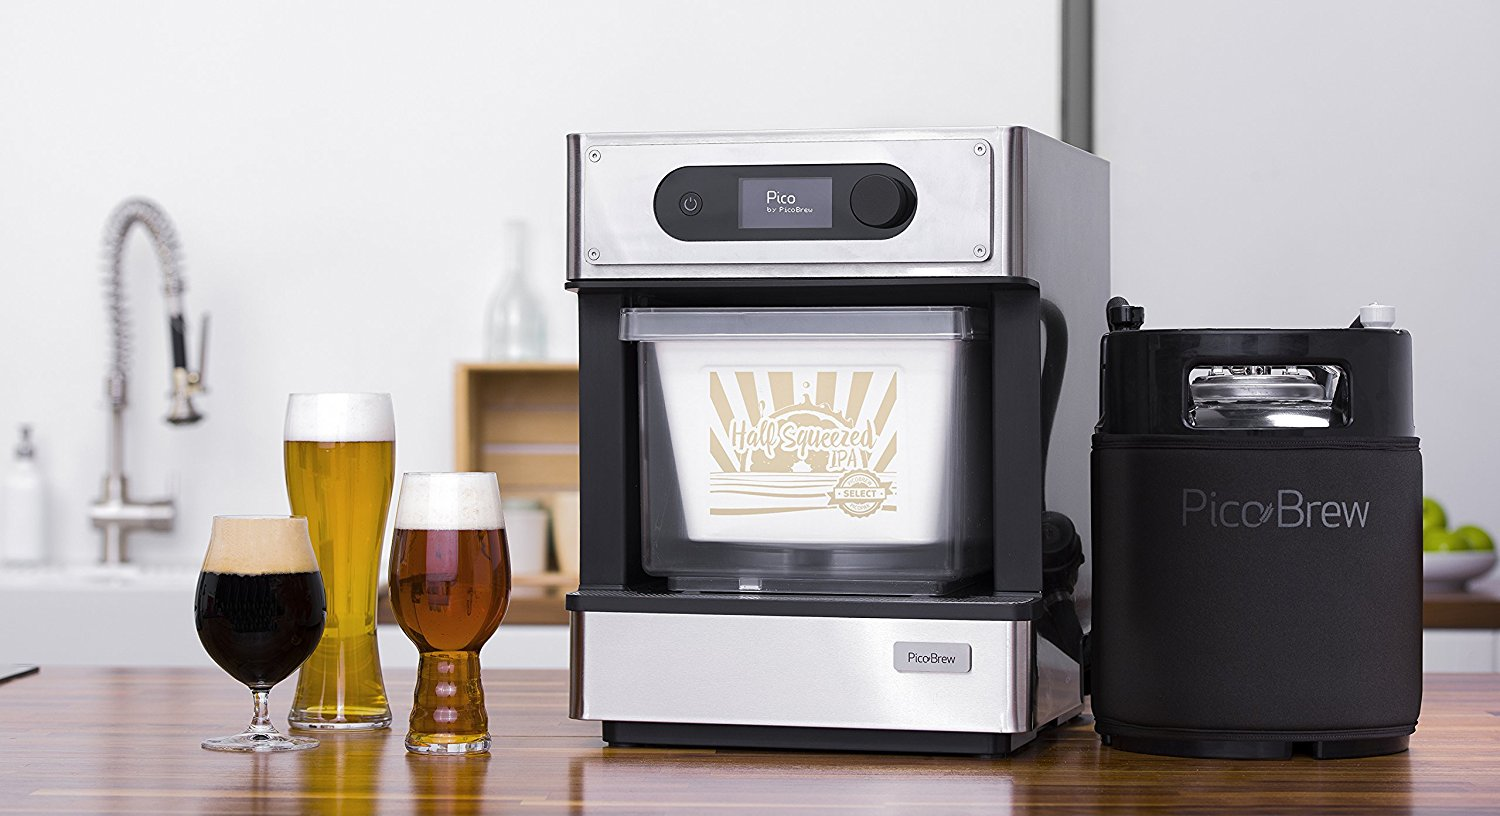 Pico Craft Beer Brewing Appliance now up to $520 off: $280 shipped